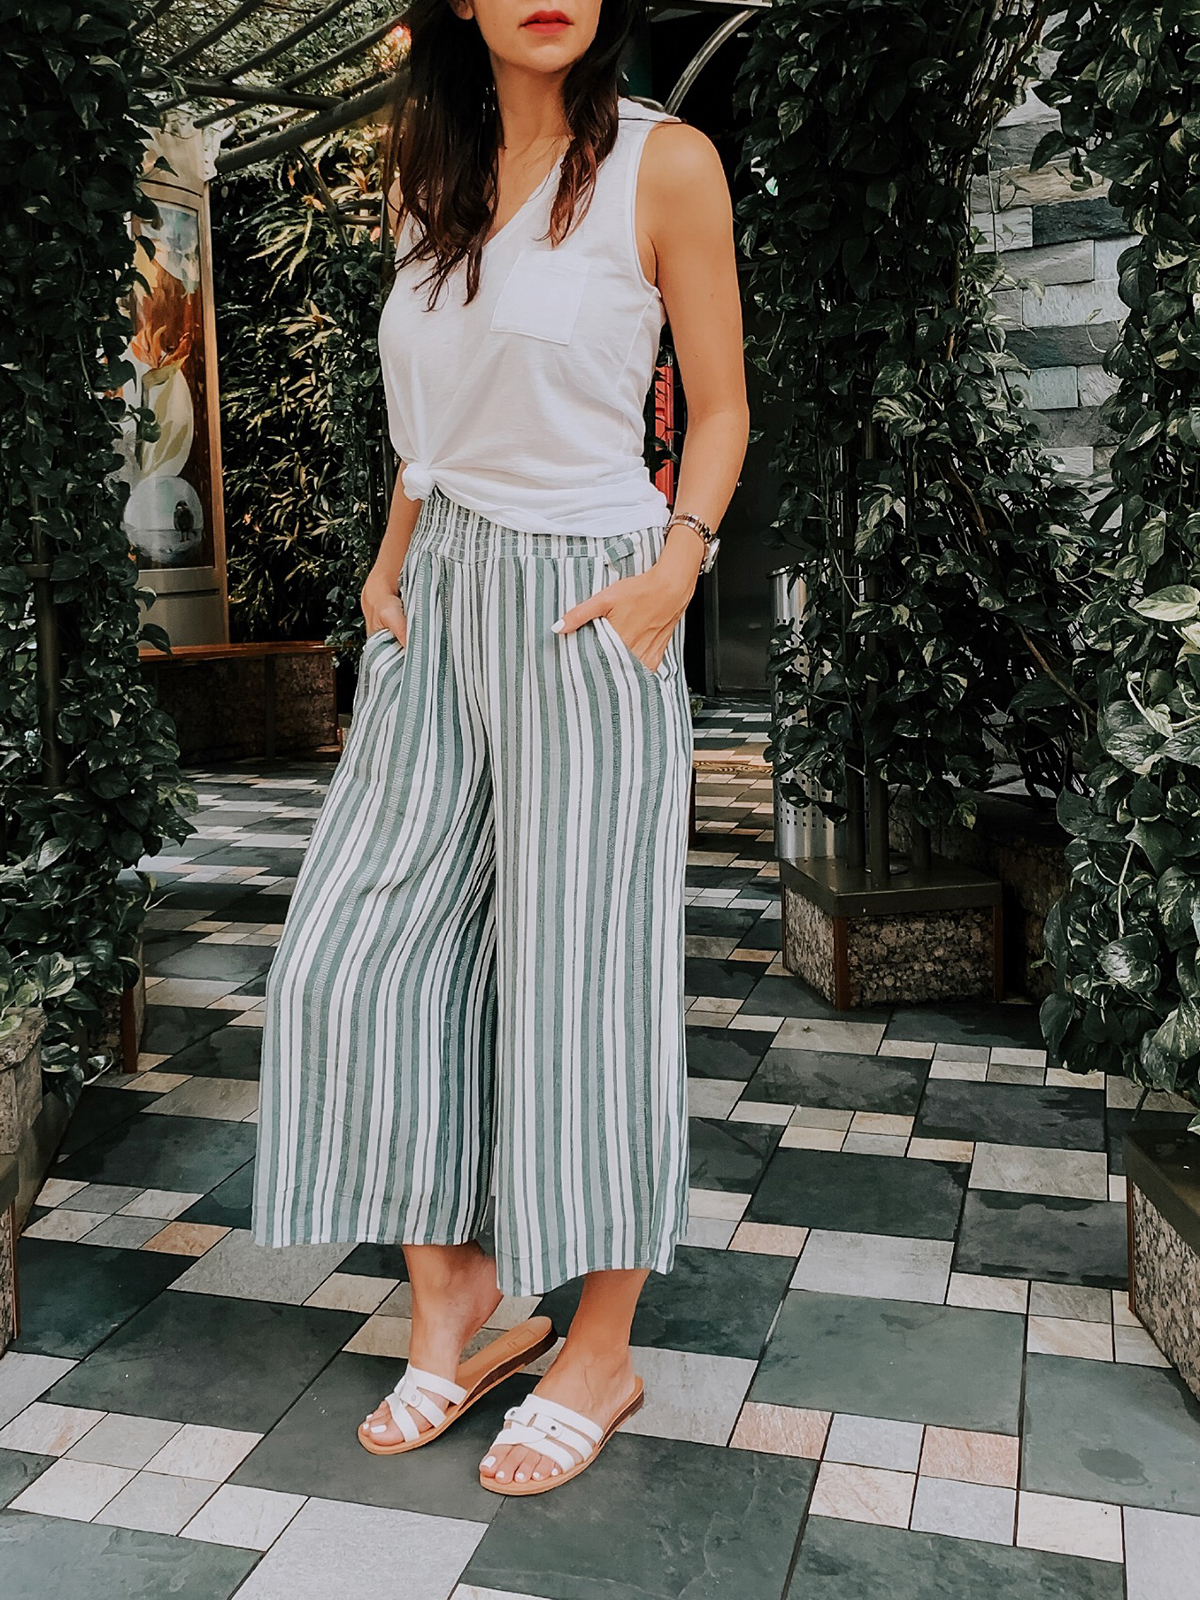 How to Style Culottes, Summer Outfit